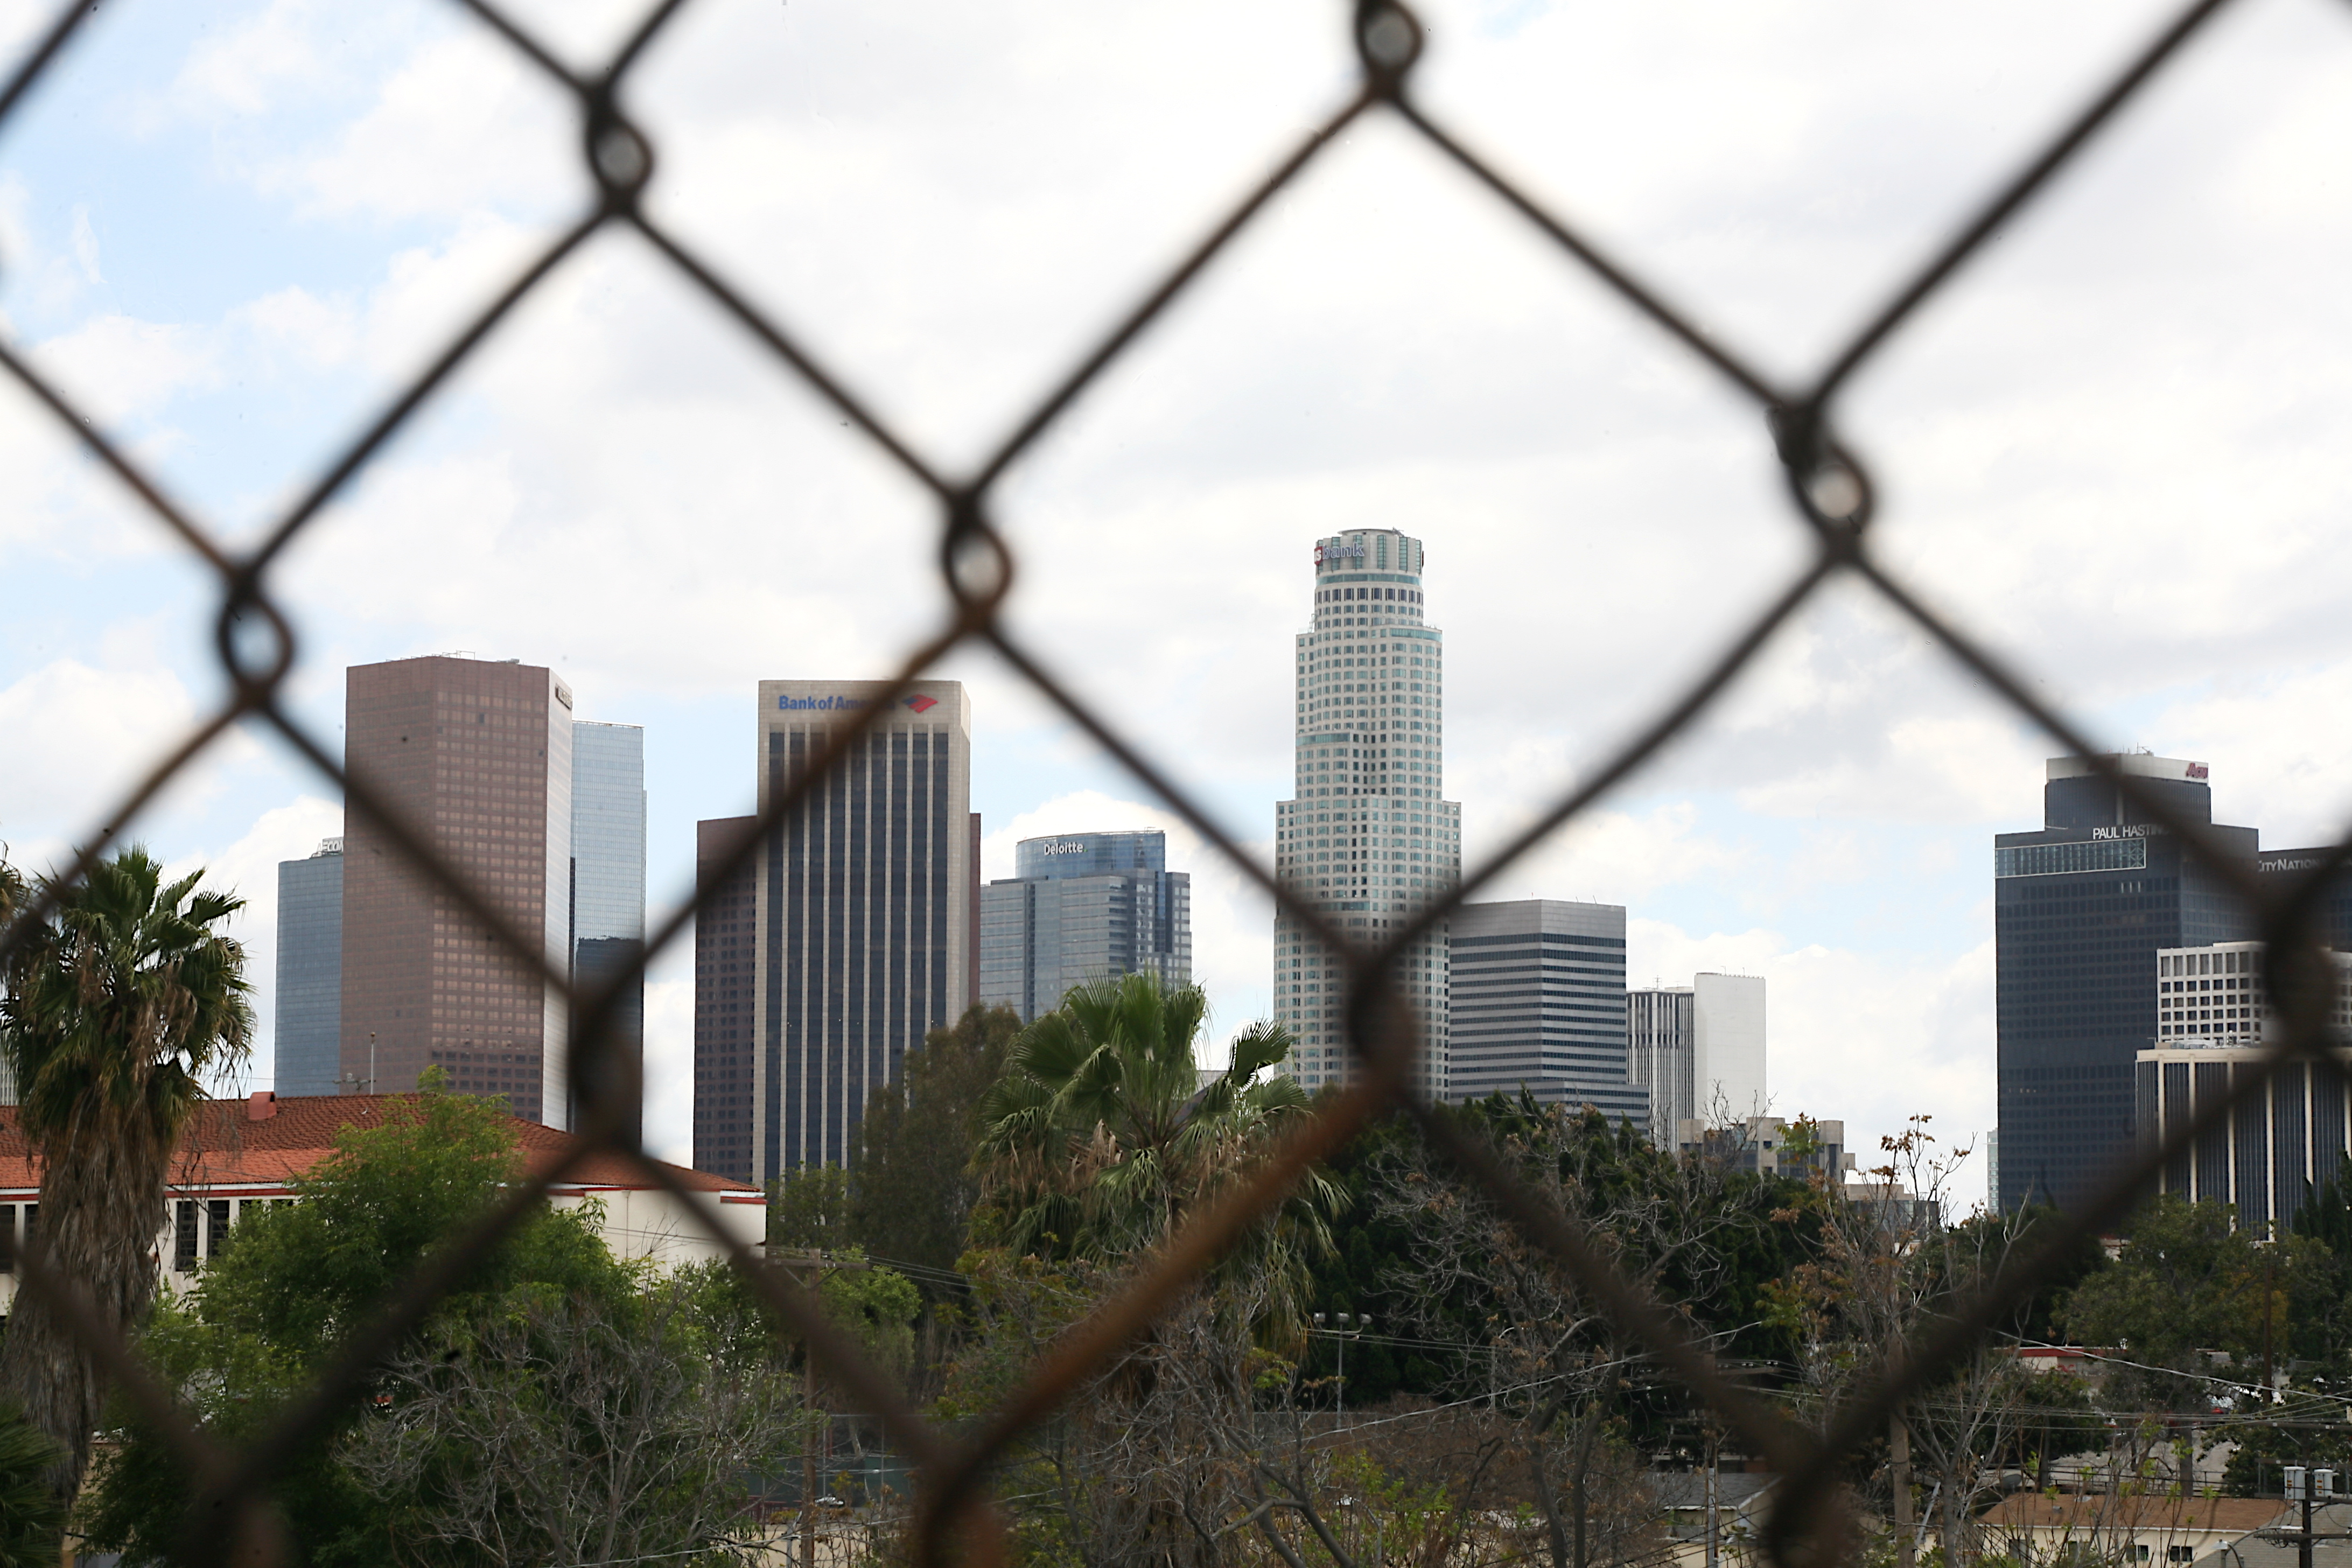 The downtown Skyline appears behind a fence separating the 101 freeway from Echo Park